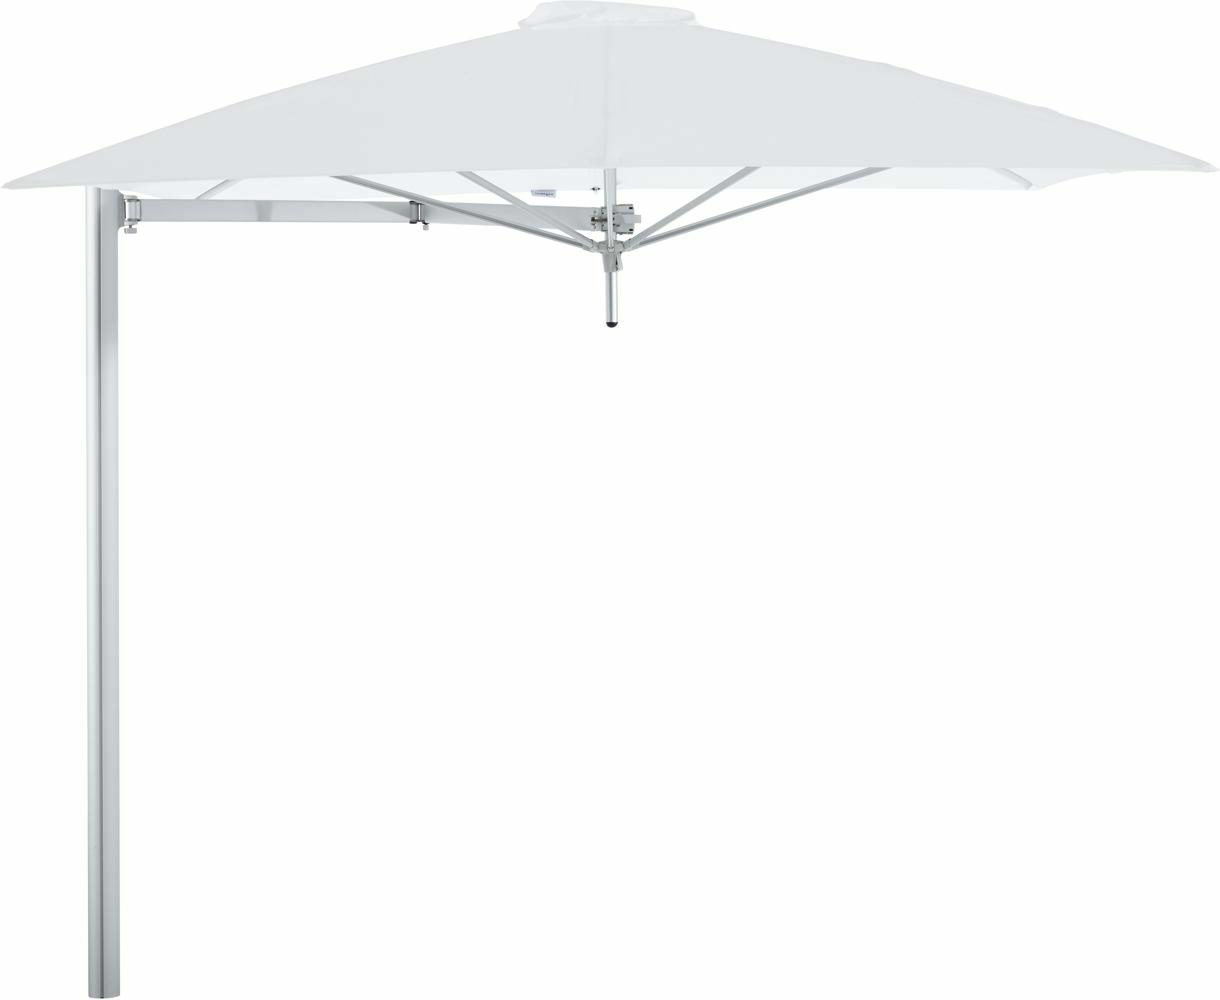 Paraflex cantilever umbrella square 2,3 m with Natural fabric and a Neo arm